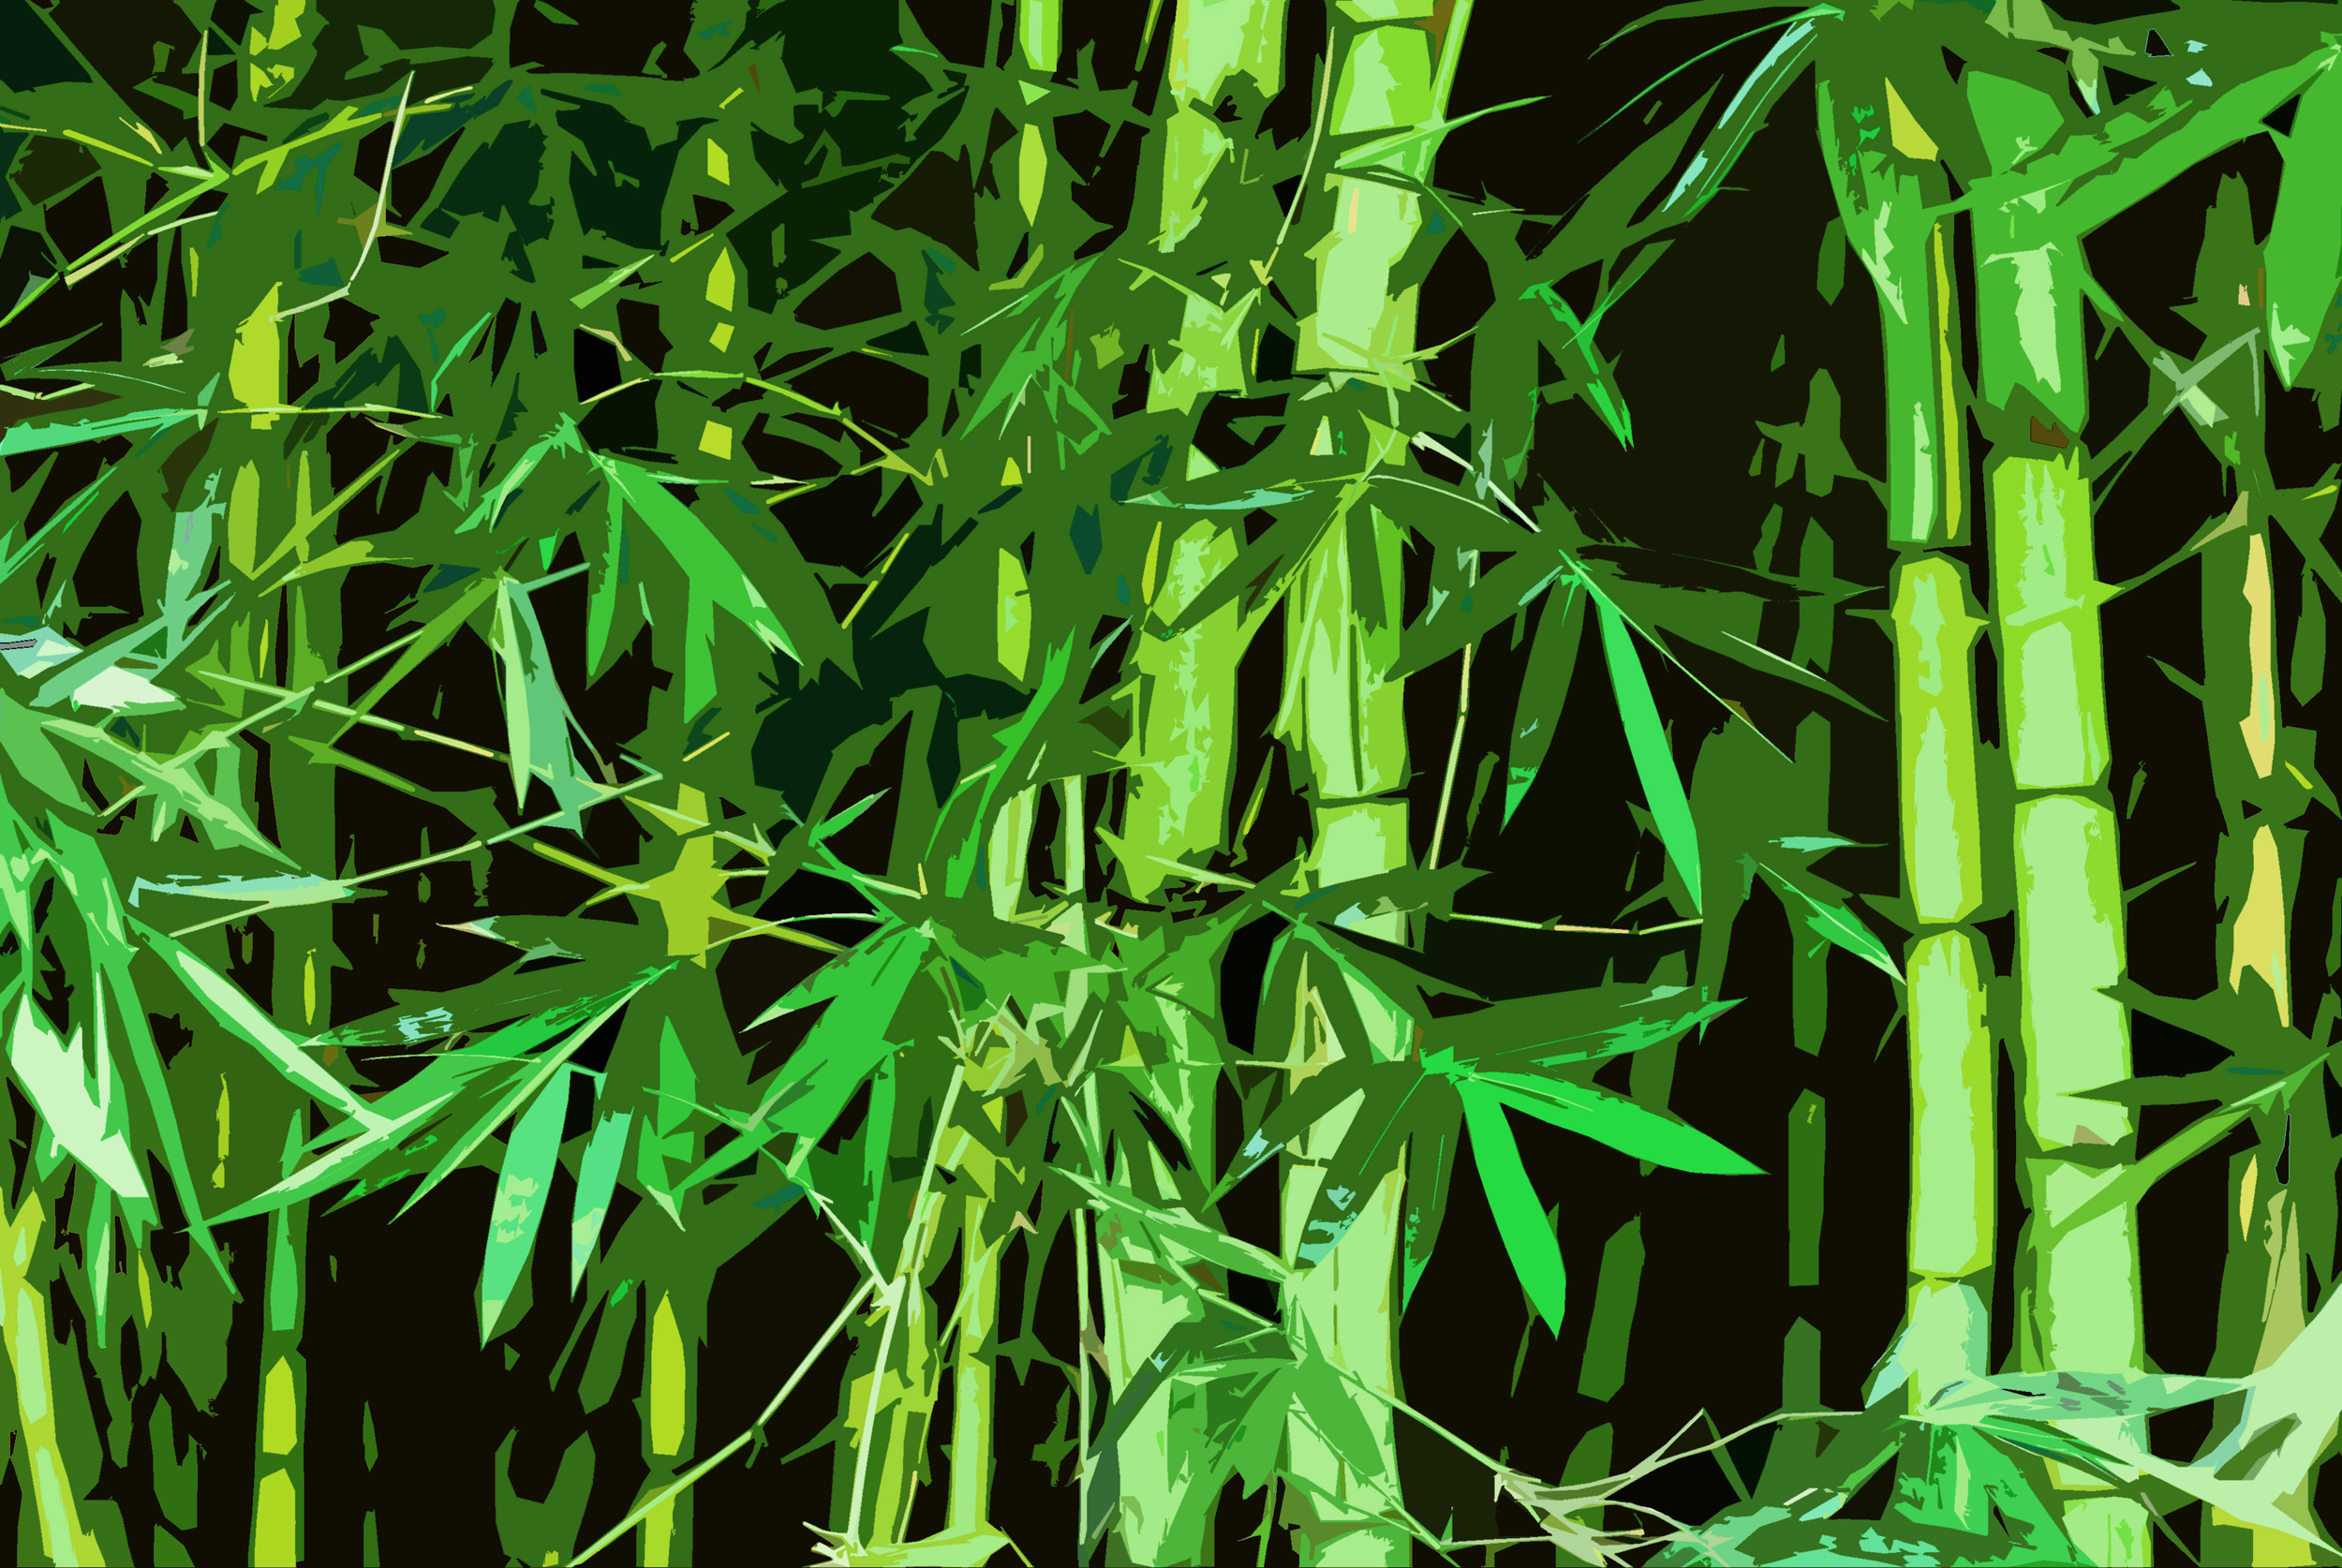 Free Stock Photo 3003 Graphic Bamboo Freeimageslive